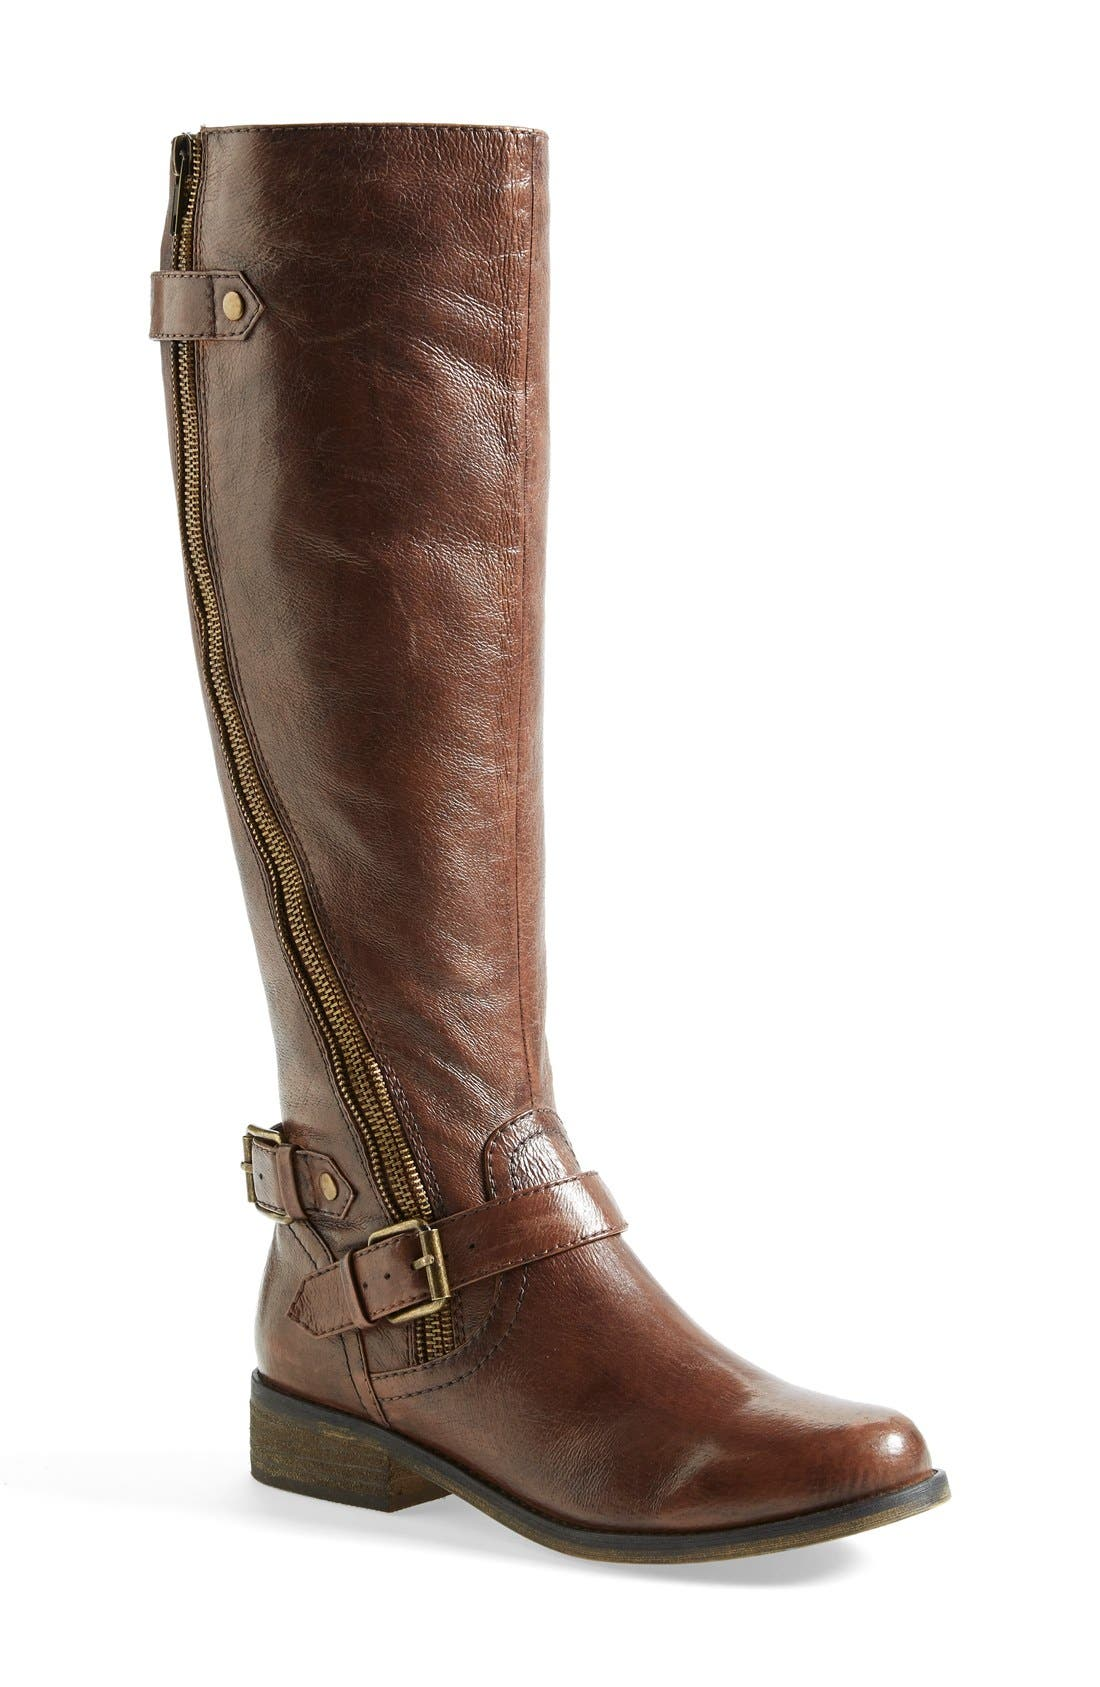 Alternate Image 1 Selected - Steve Madden 'Synicle' Riding Boot (Wide Calf) (Women)